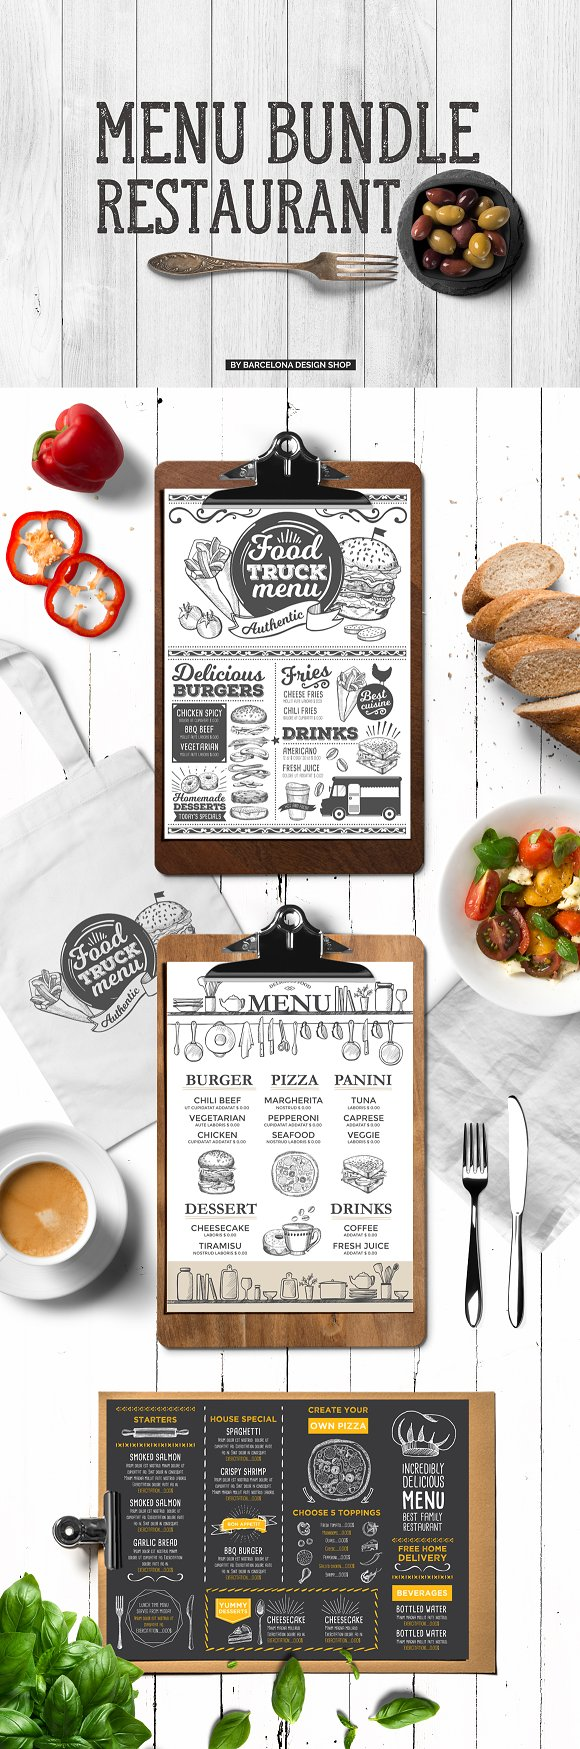 Food Menu Templates Bundle-Graphicriver中文最全的素材分享平台